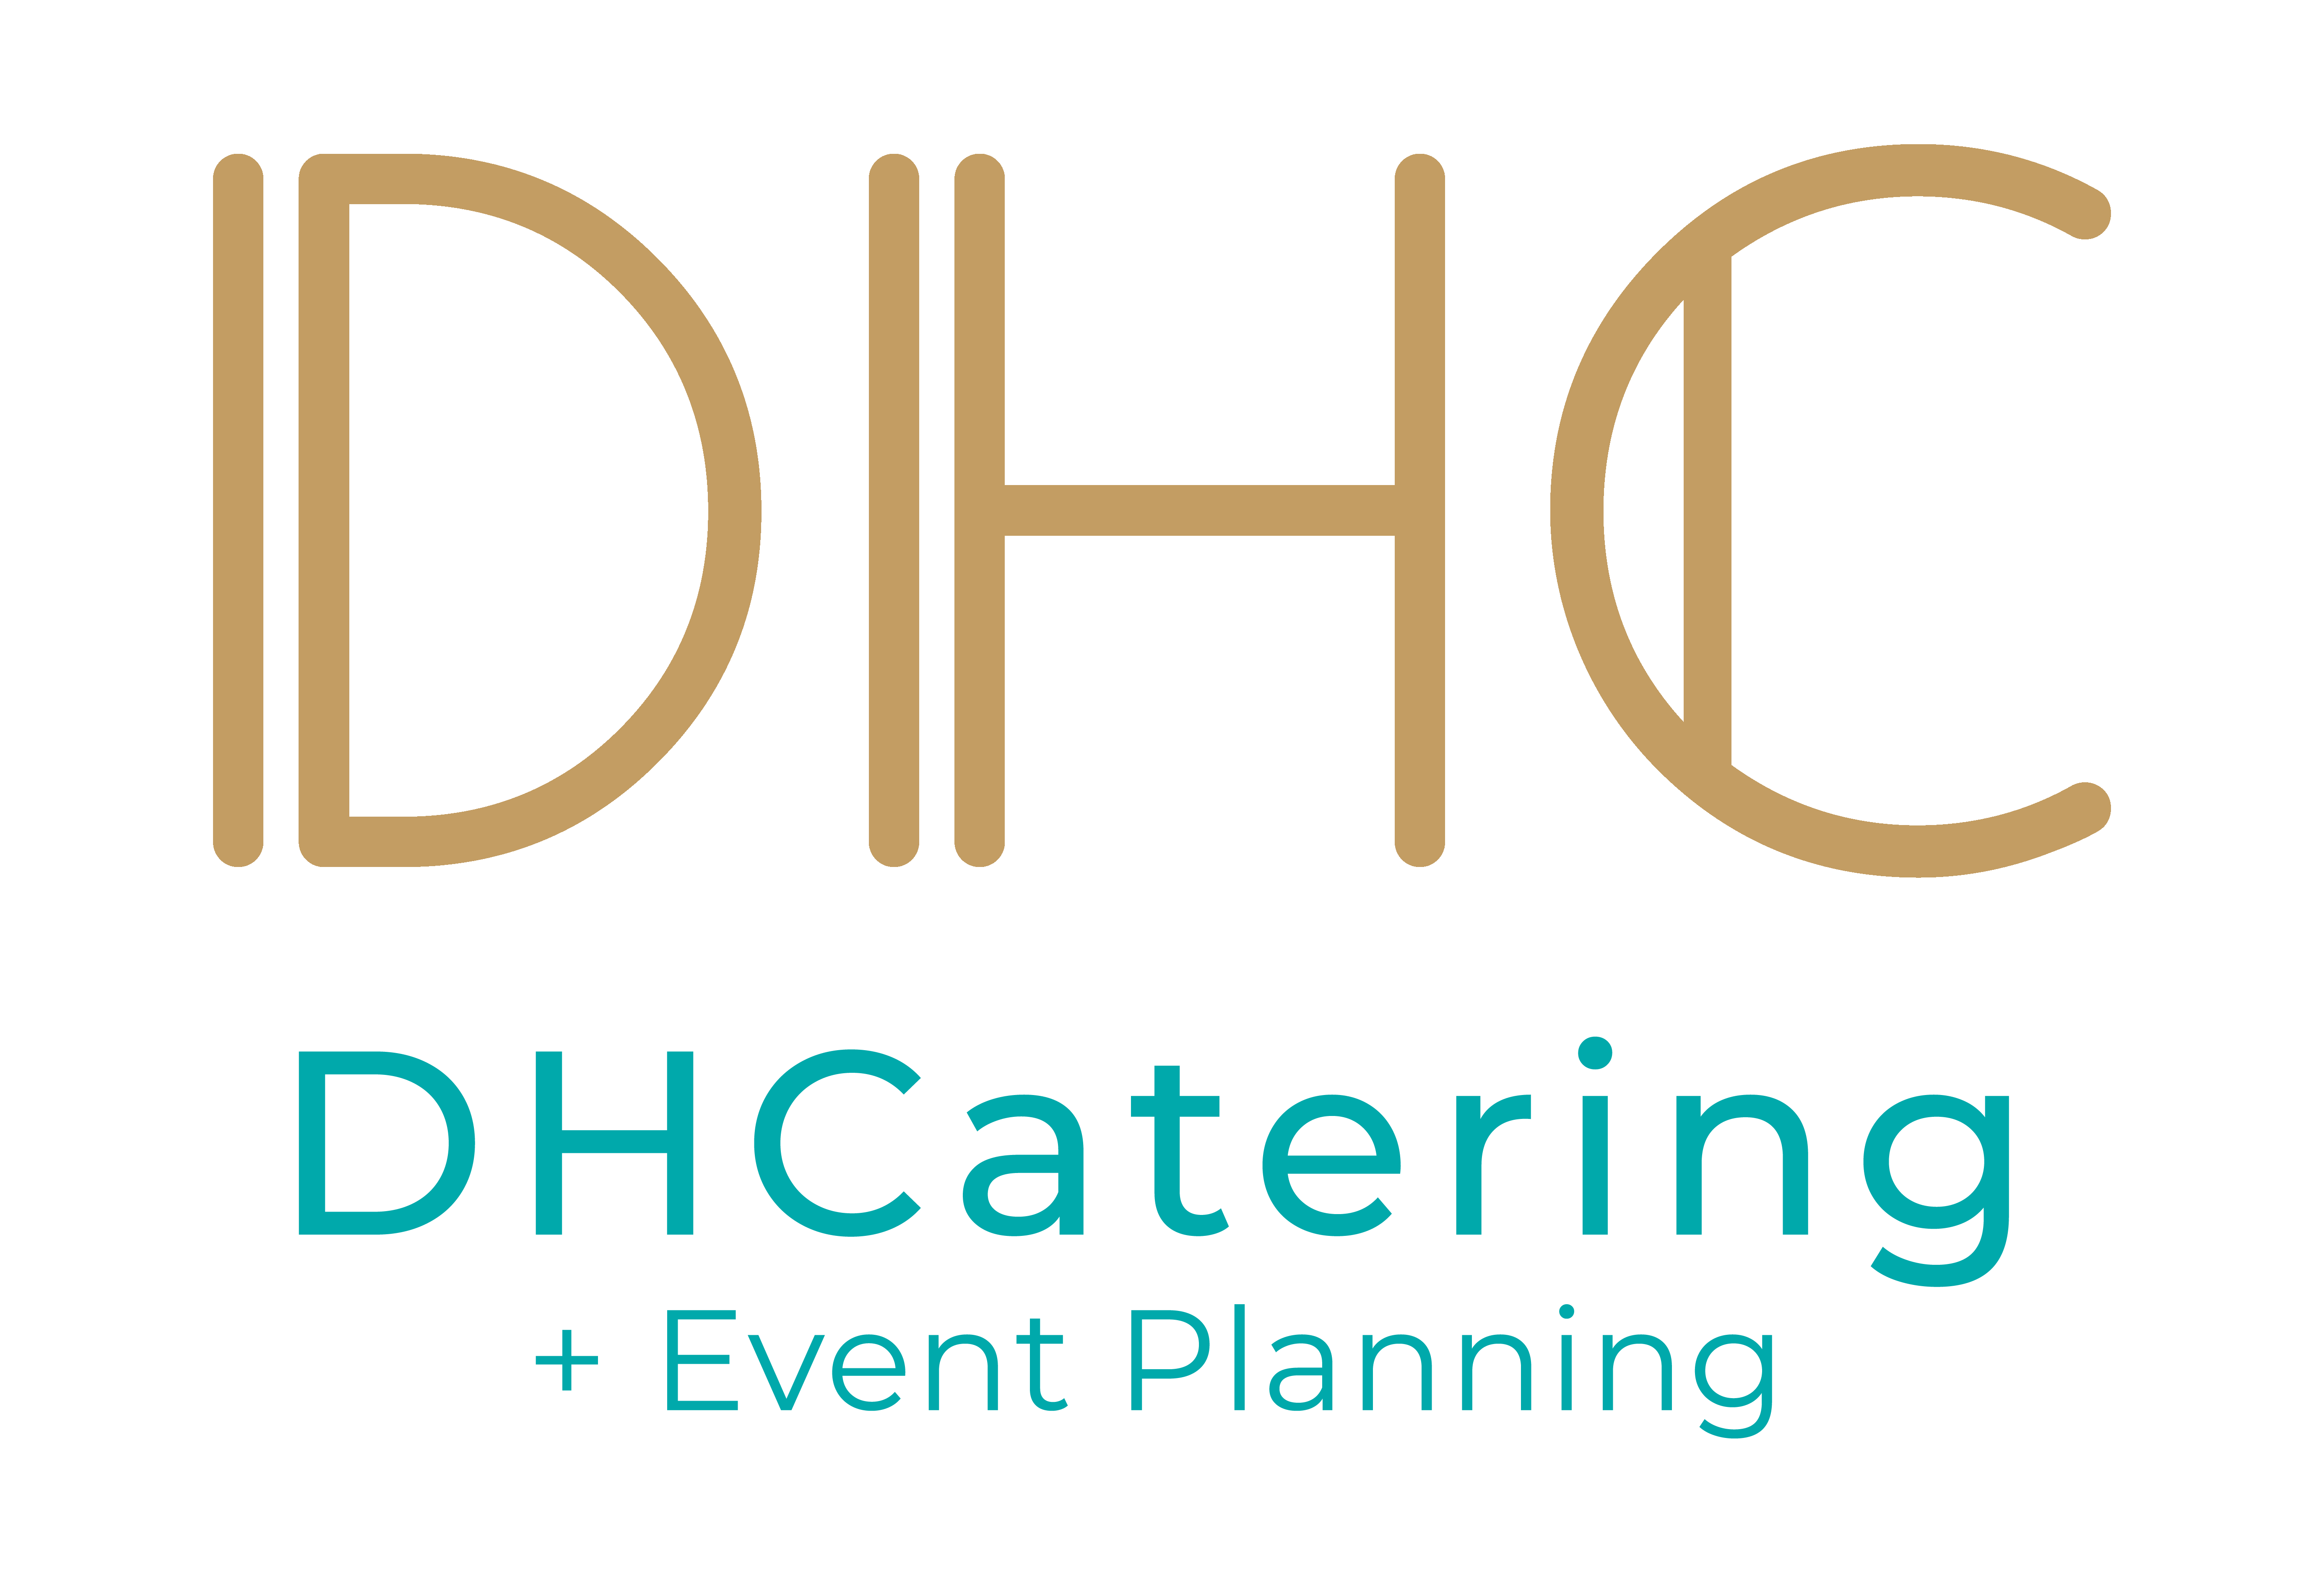 DH Catering + Event Planning  // US +1.808.699.8830  AUS +61.02.8007.3771 // Honolulu, Hawaii on the Island of Oahu // Food + Bar Catering, Coordination, Florals, Rentals and More